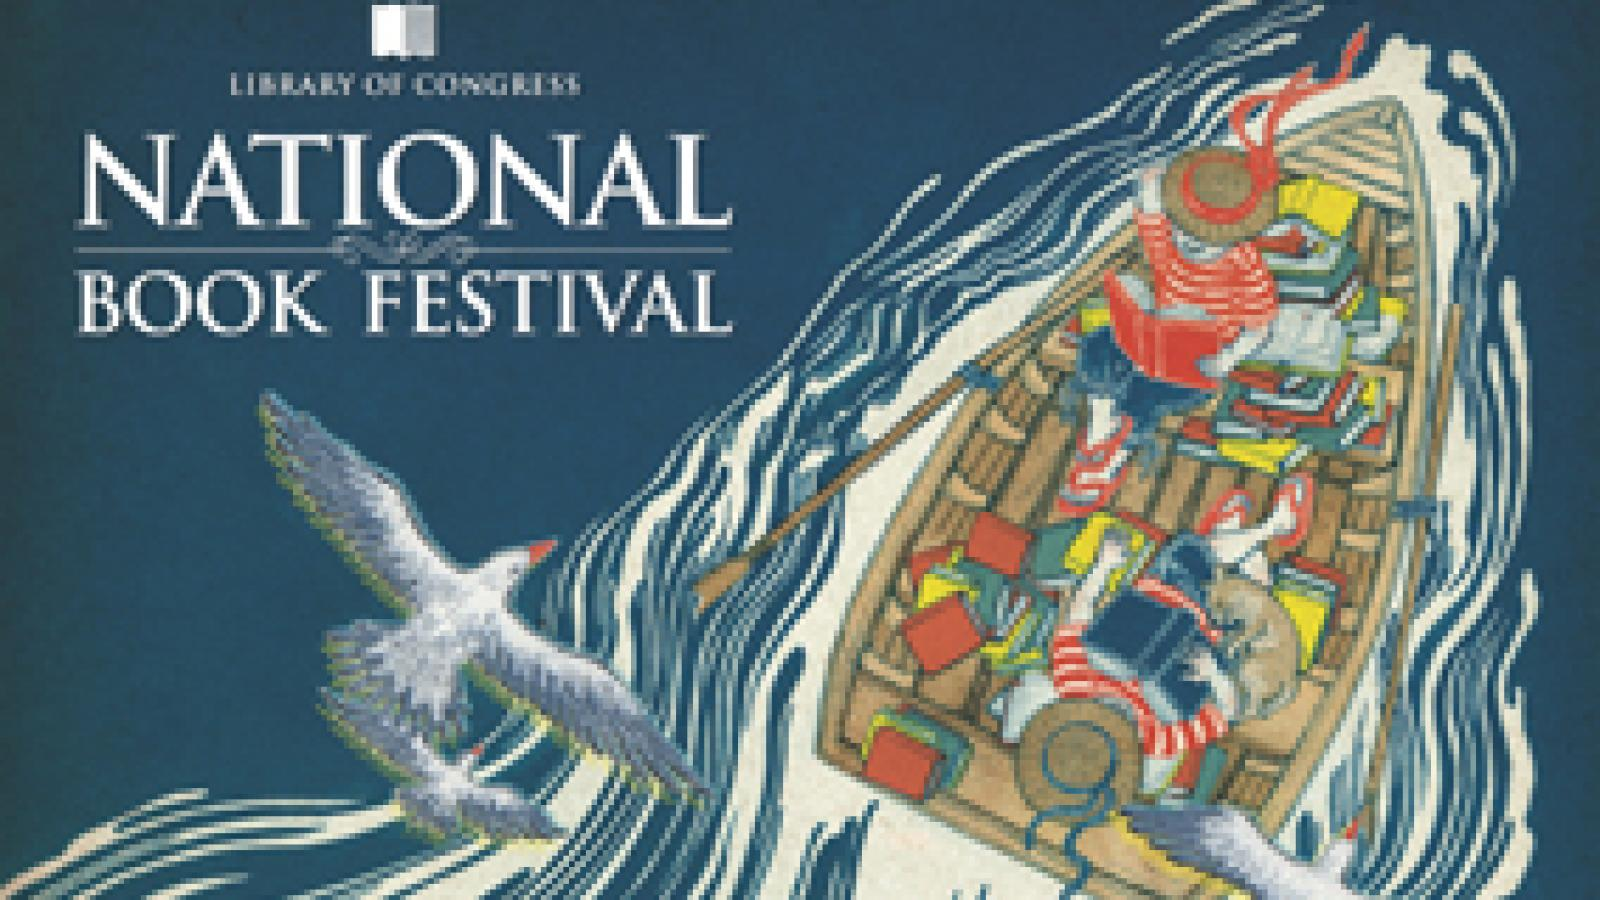 Festival poster with two people in a boat surrounded by books with birds flying above